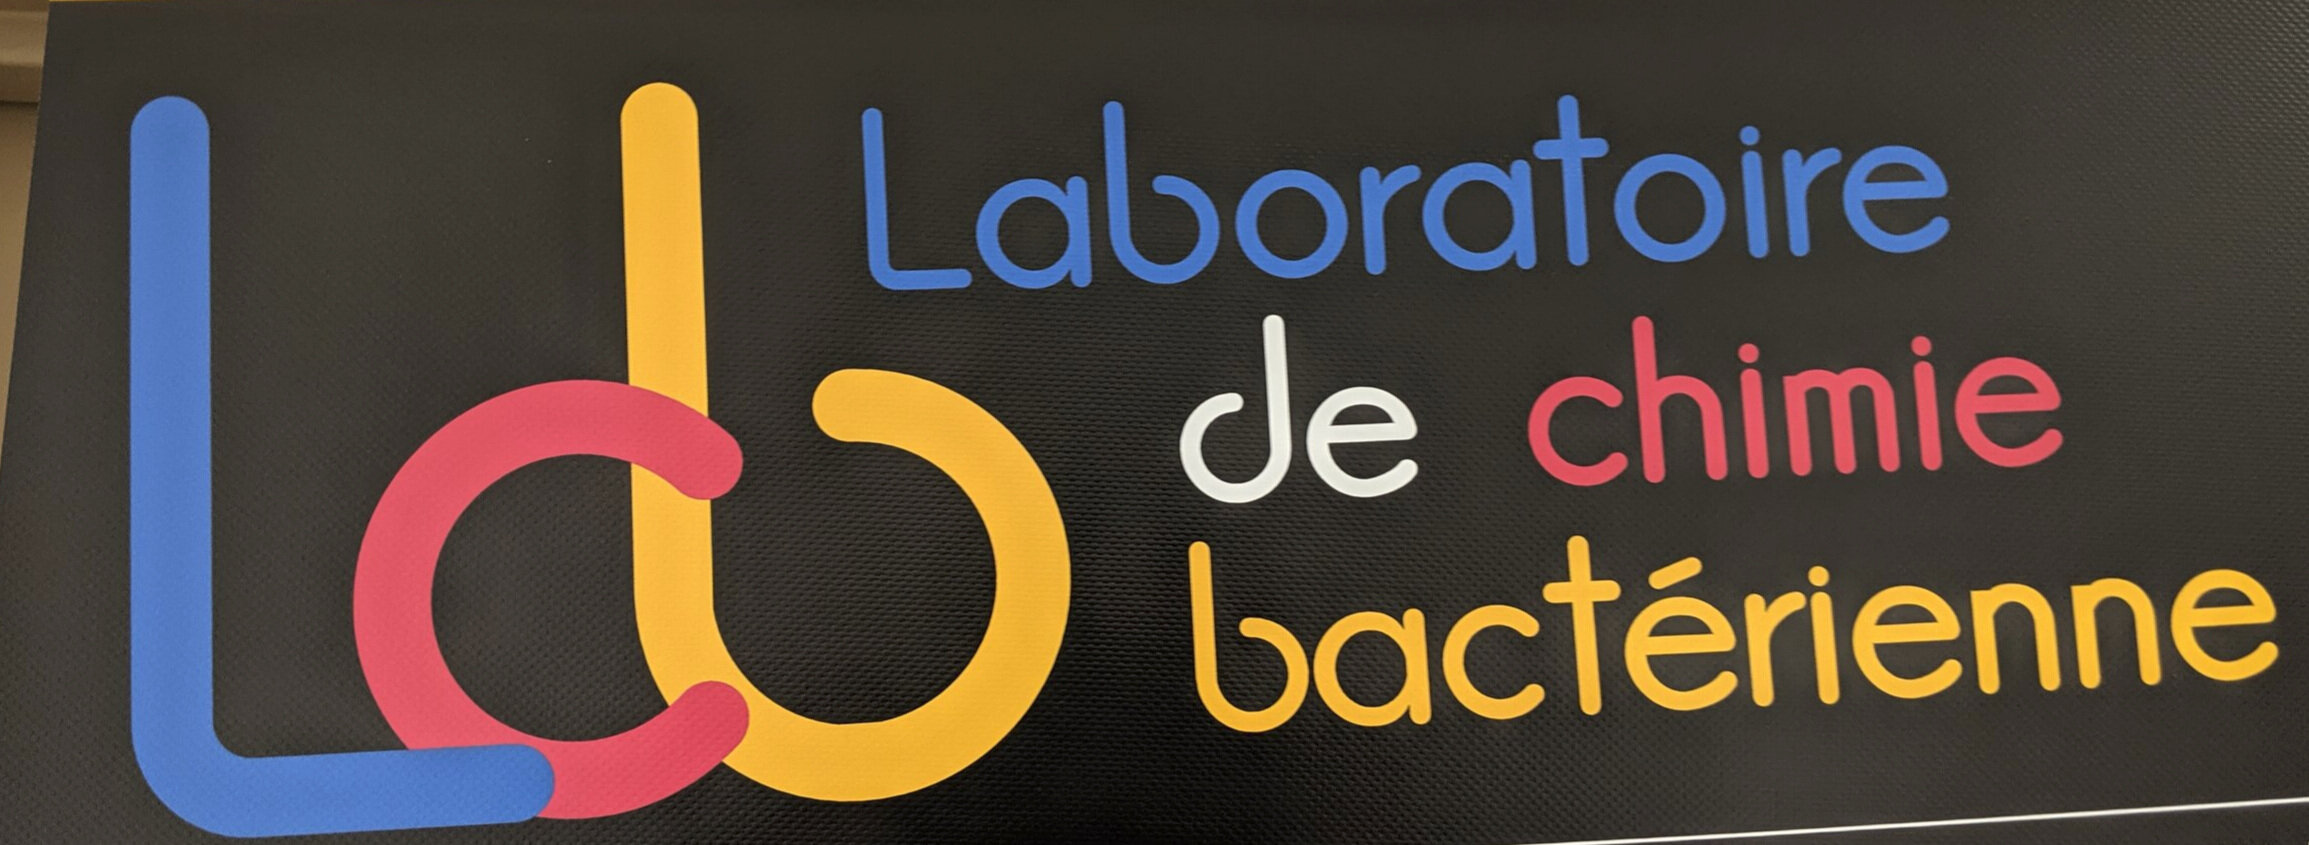 I am working with Dr. Talla in the Laboratory of bacterial chemistry at CNRS, located in Maresille, France.